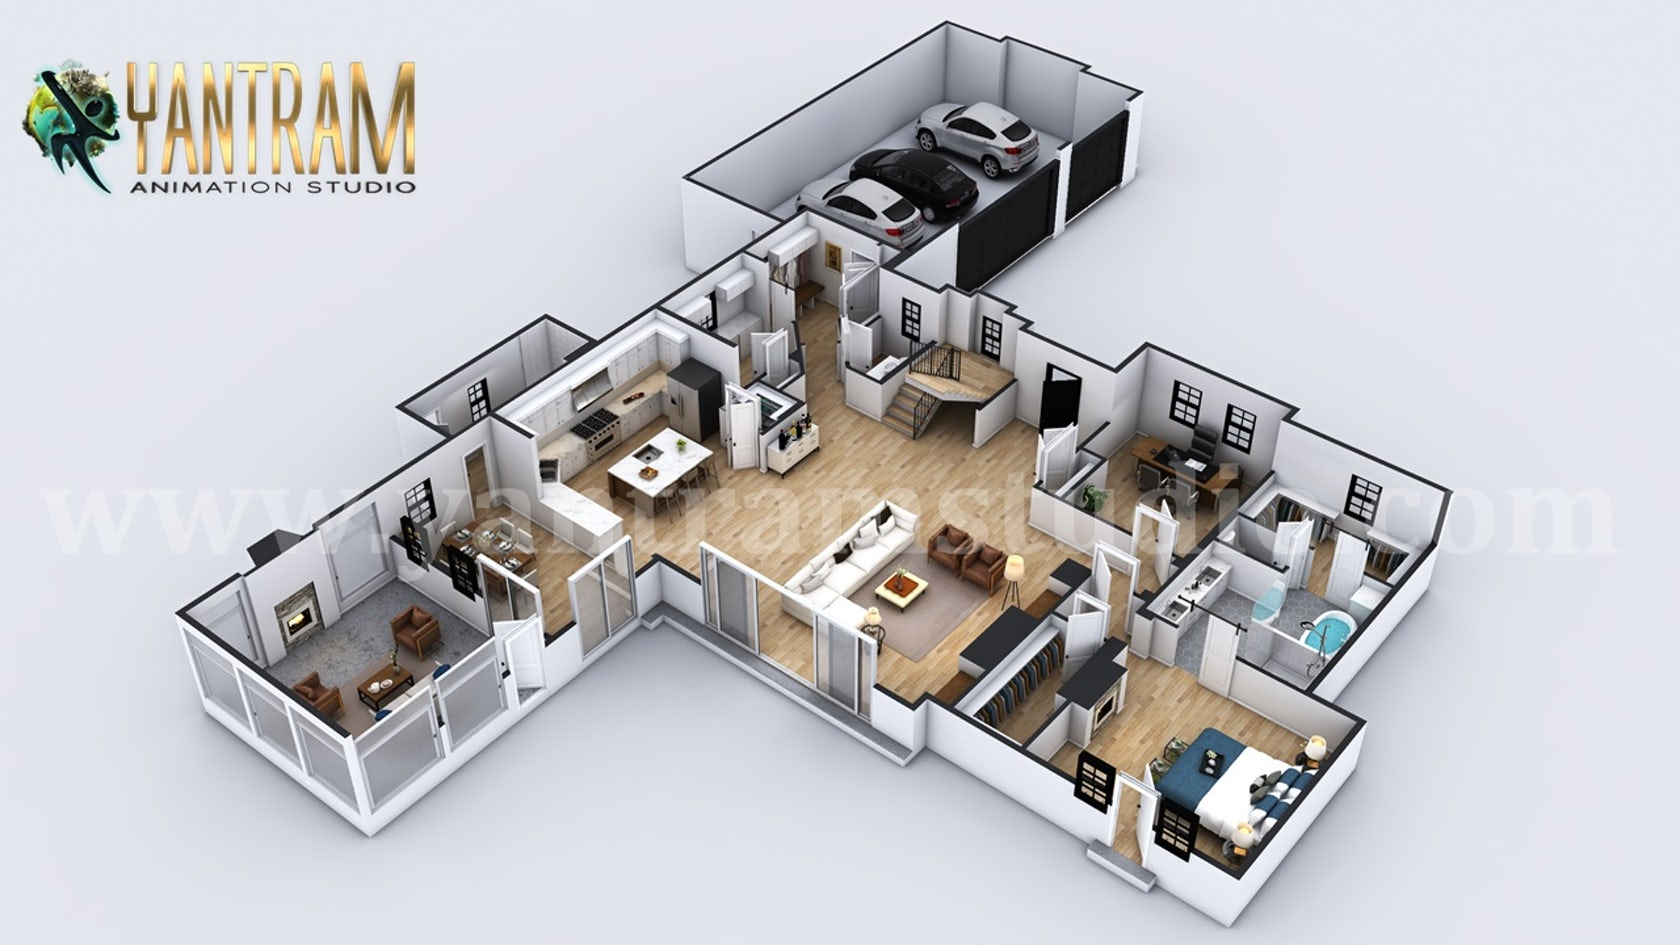 4 Bedroom Modern Residential 3d Floor Plan House Design By Architectural Exterior Visualization Design Company Architizer